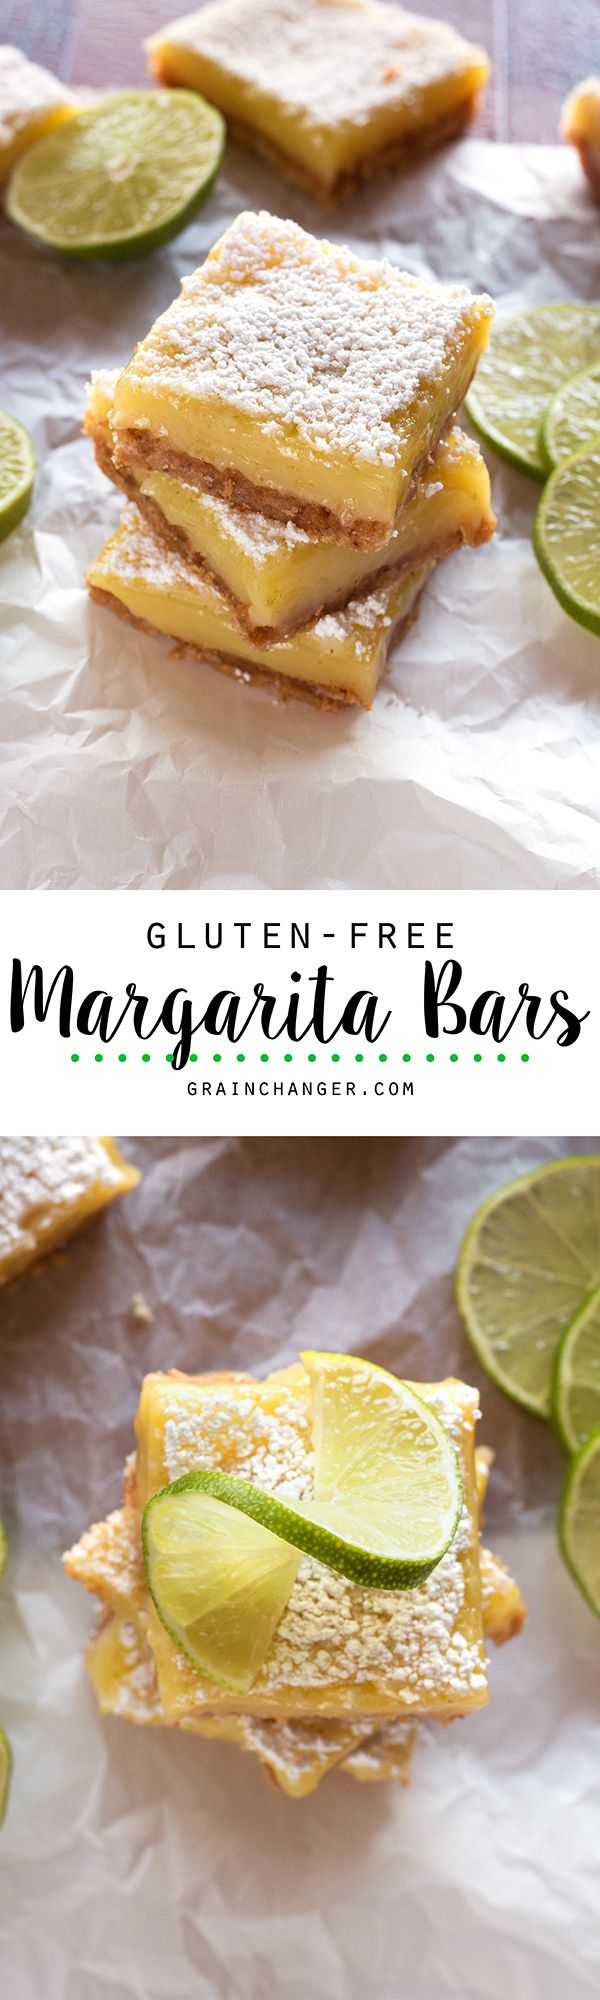 Light, bright, and perfectly citrusy, these cocktail-inspired Gluten-Free Margarita Bars are the perfect summertime treat!